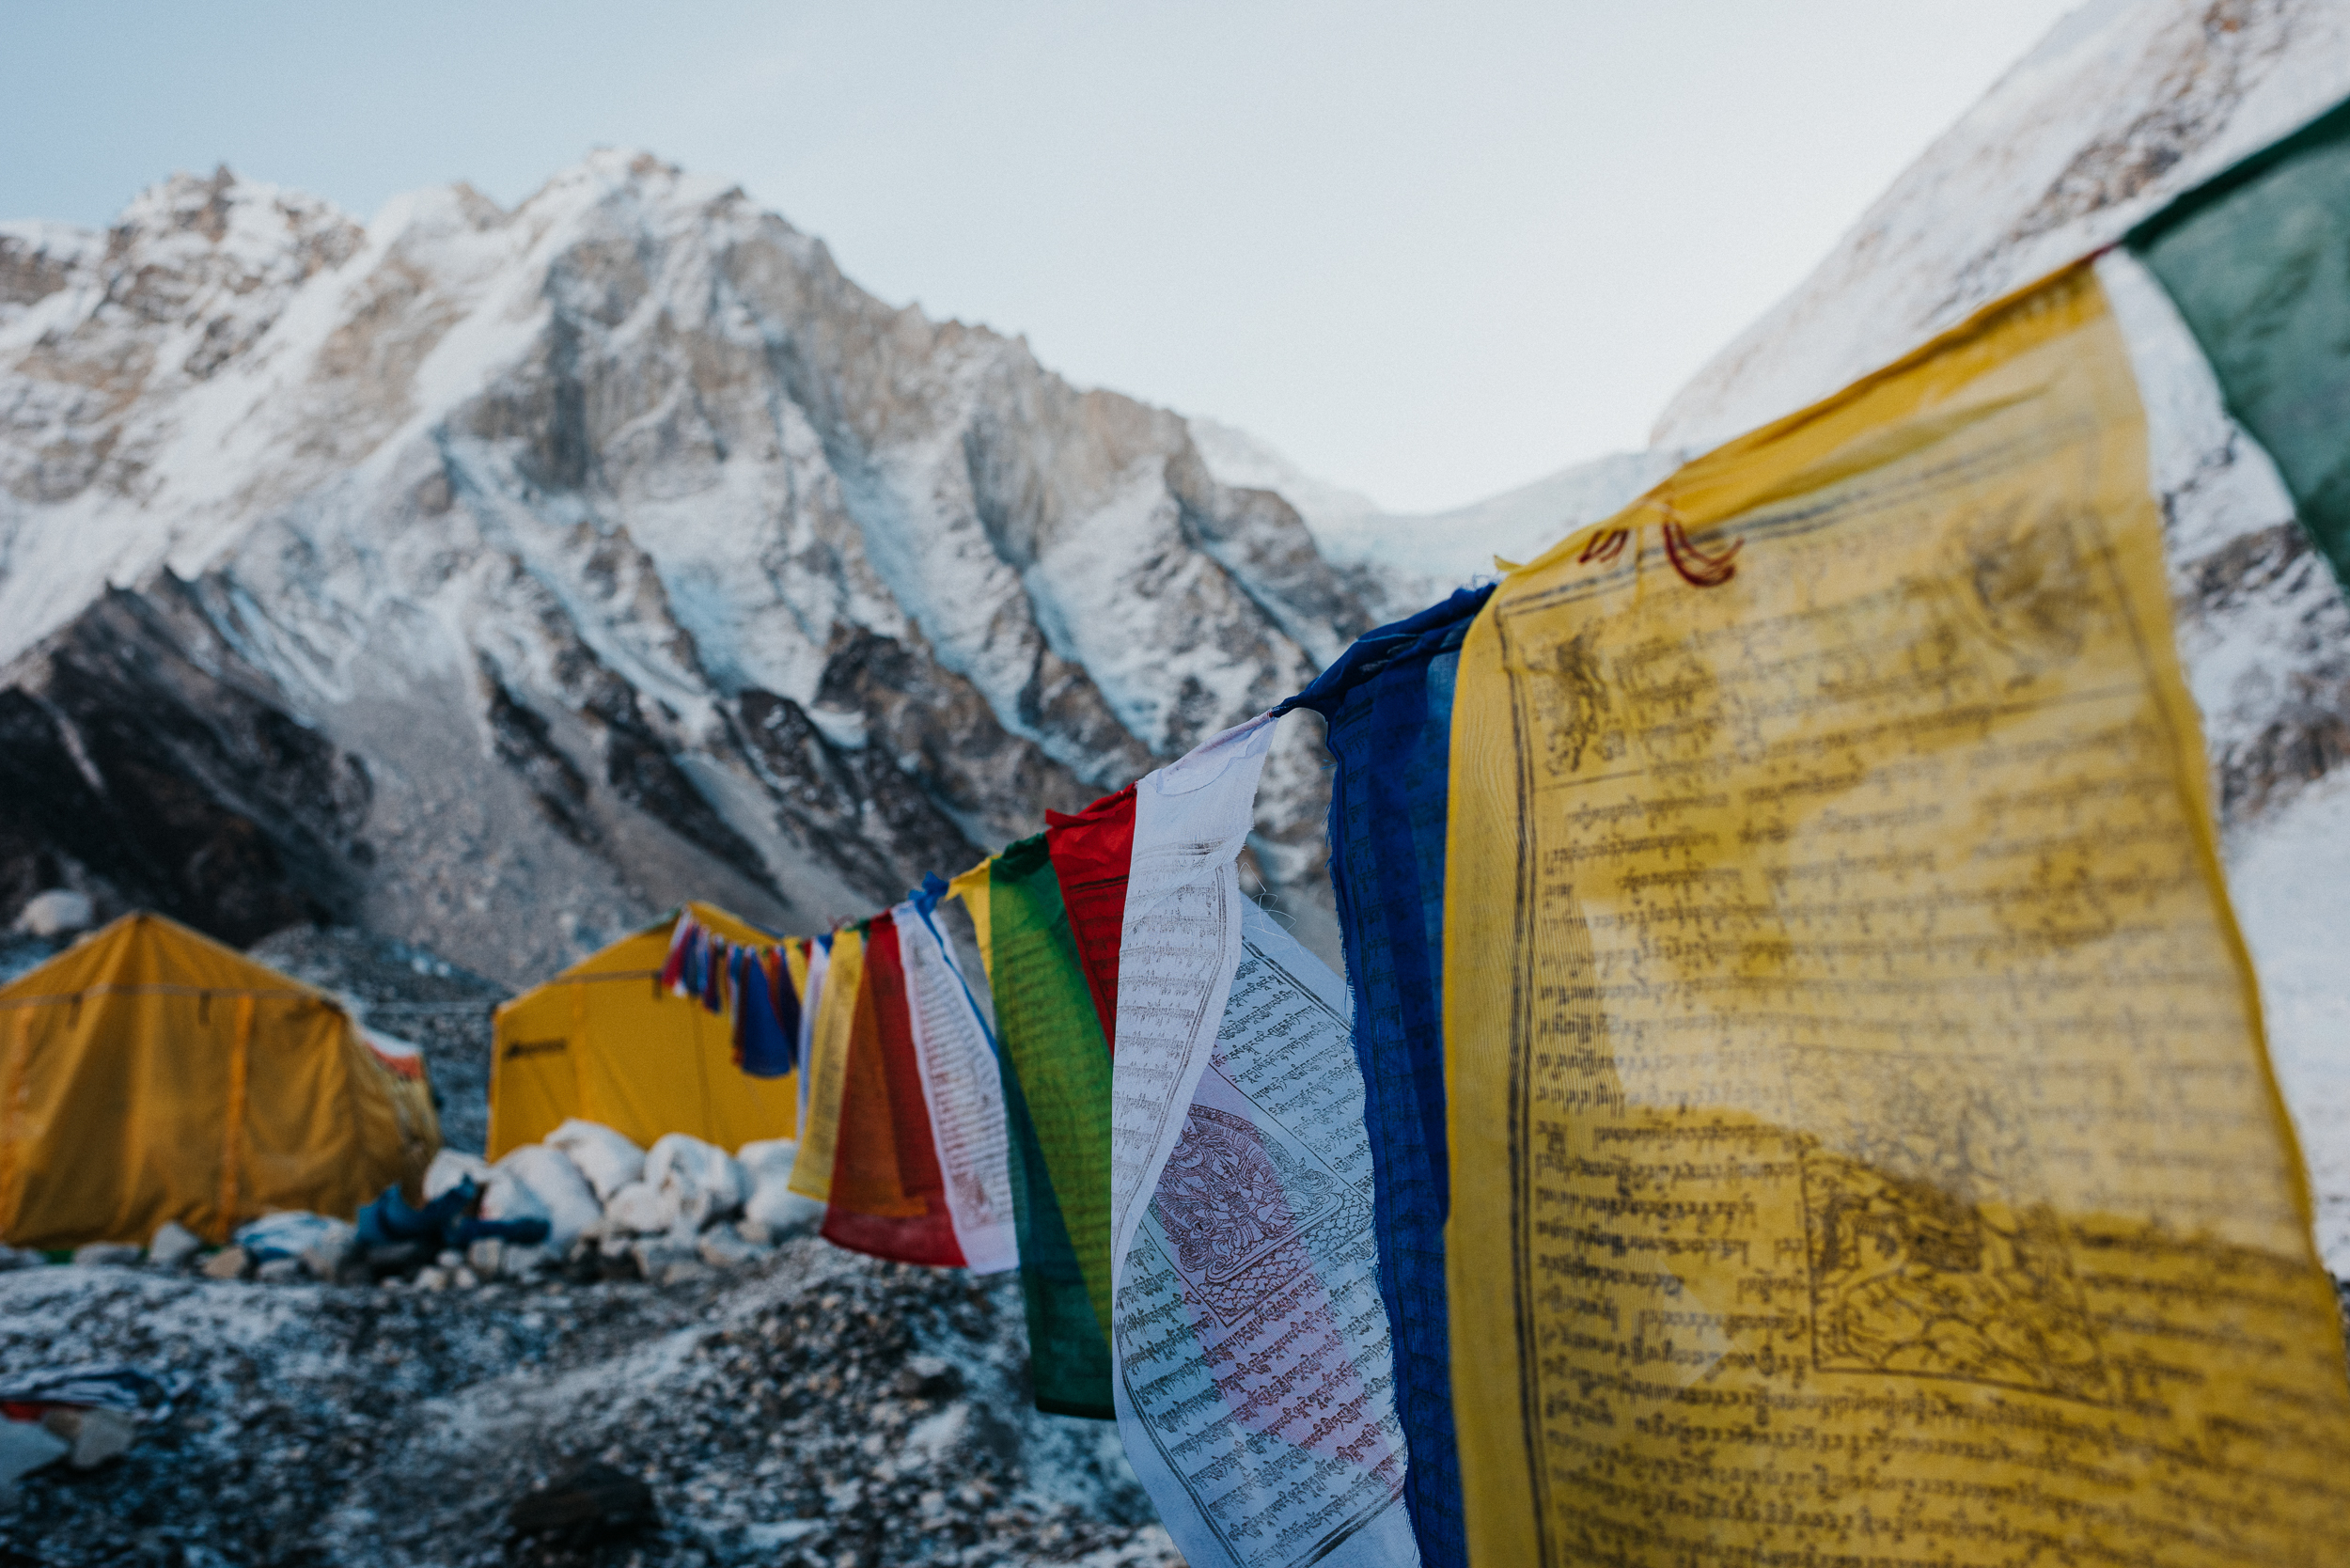 Nepal_EverestBaseCamp_2019_TaraShupe_Photography_DSC_4354.jpg